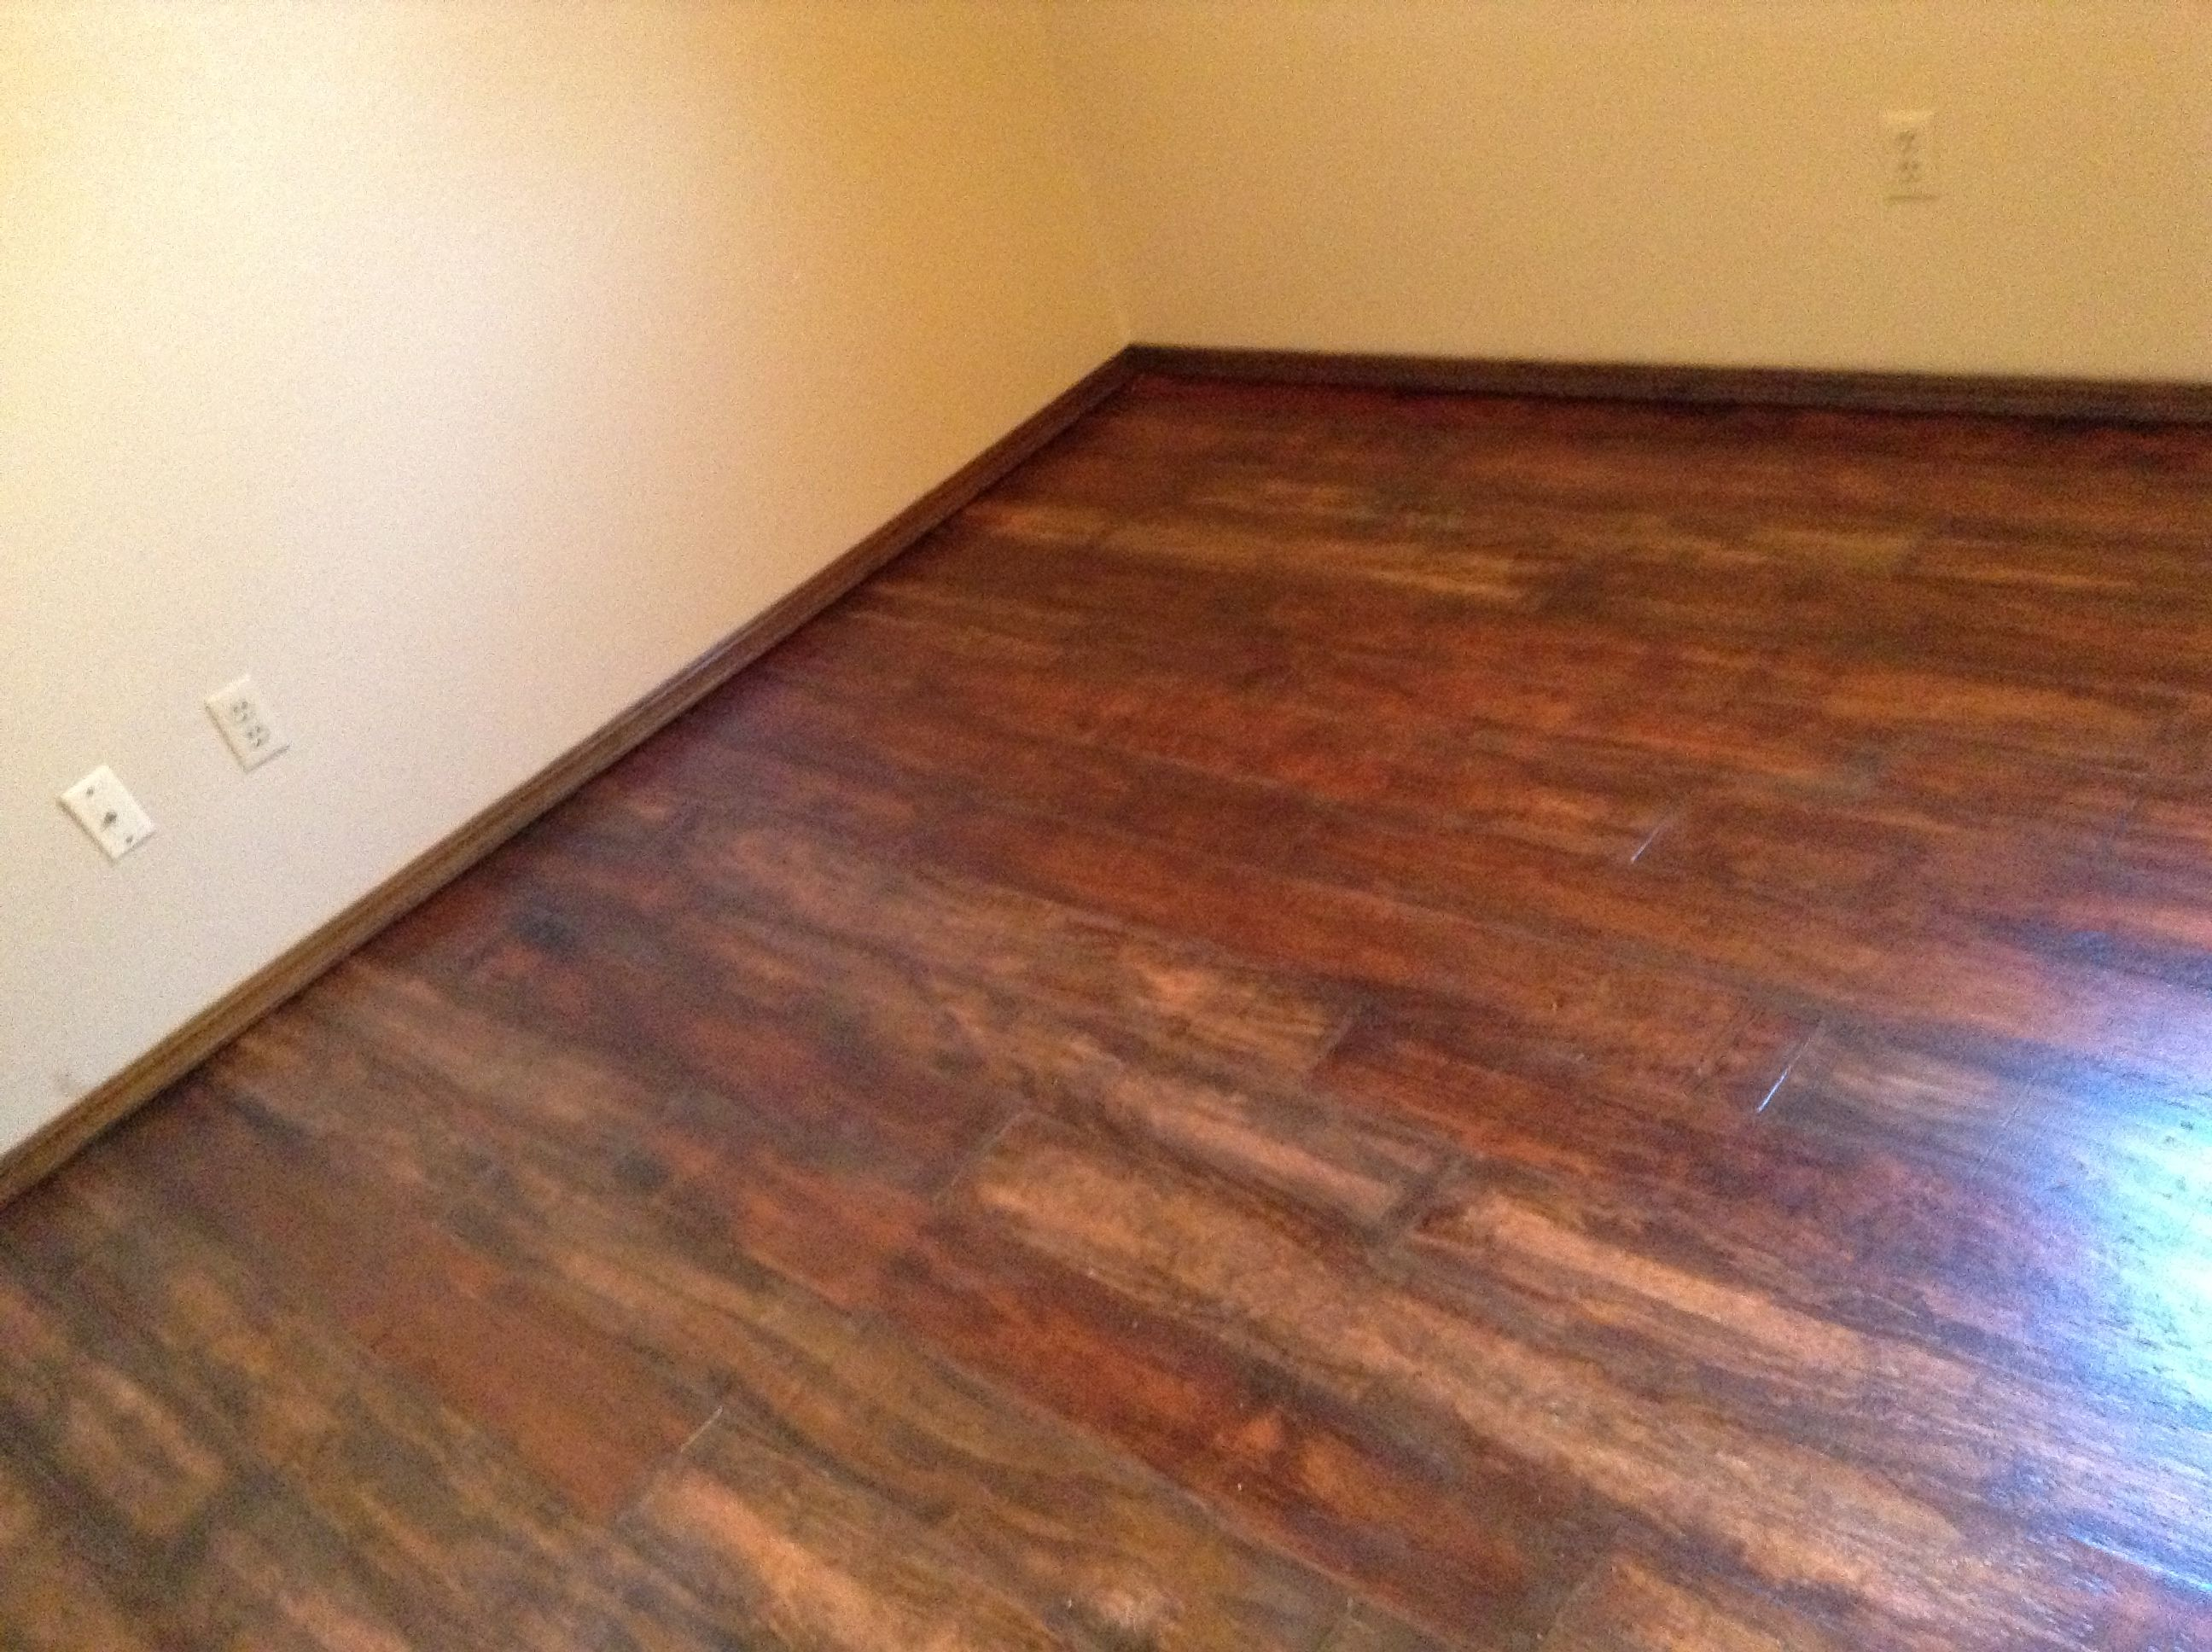 2nd Ripped Plywood Planked Floor For Rental Plywood